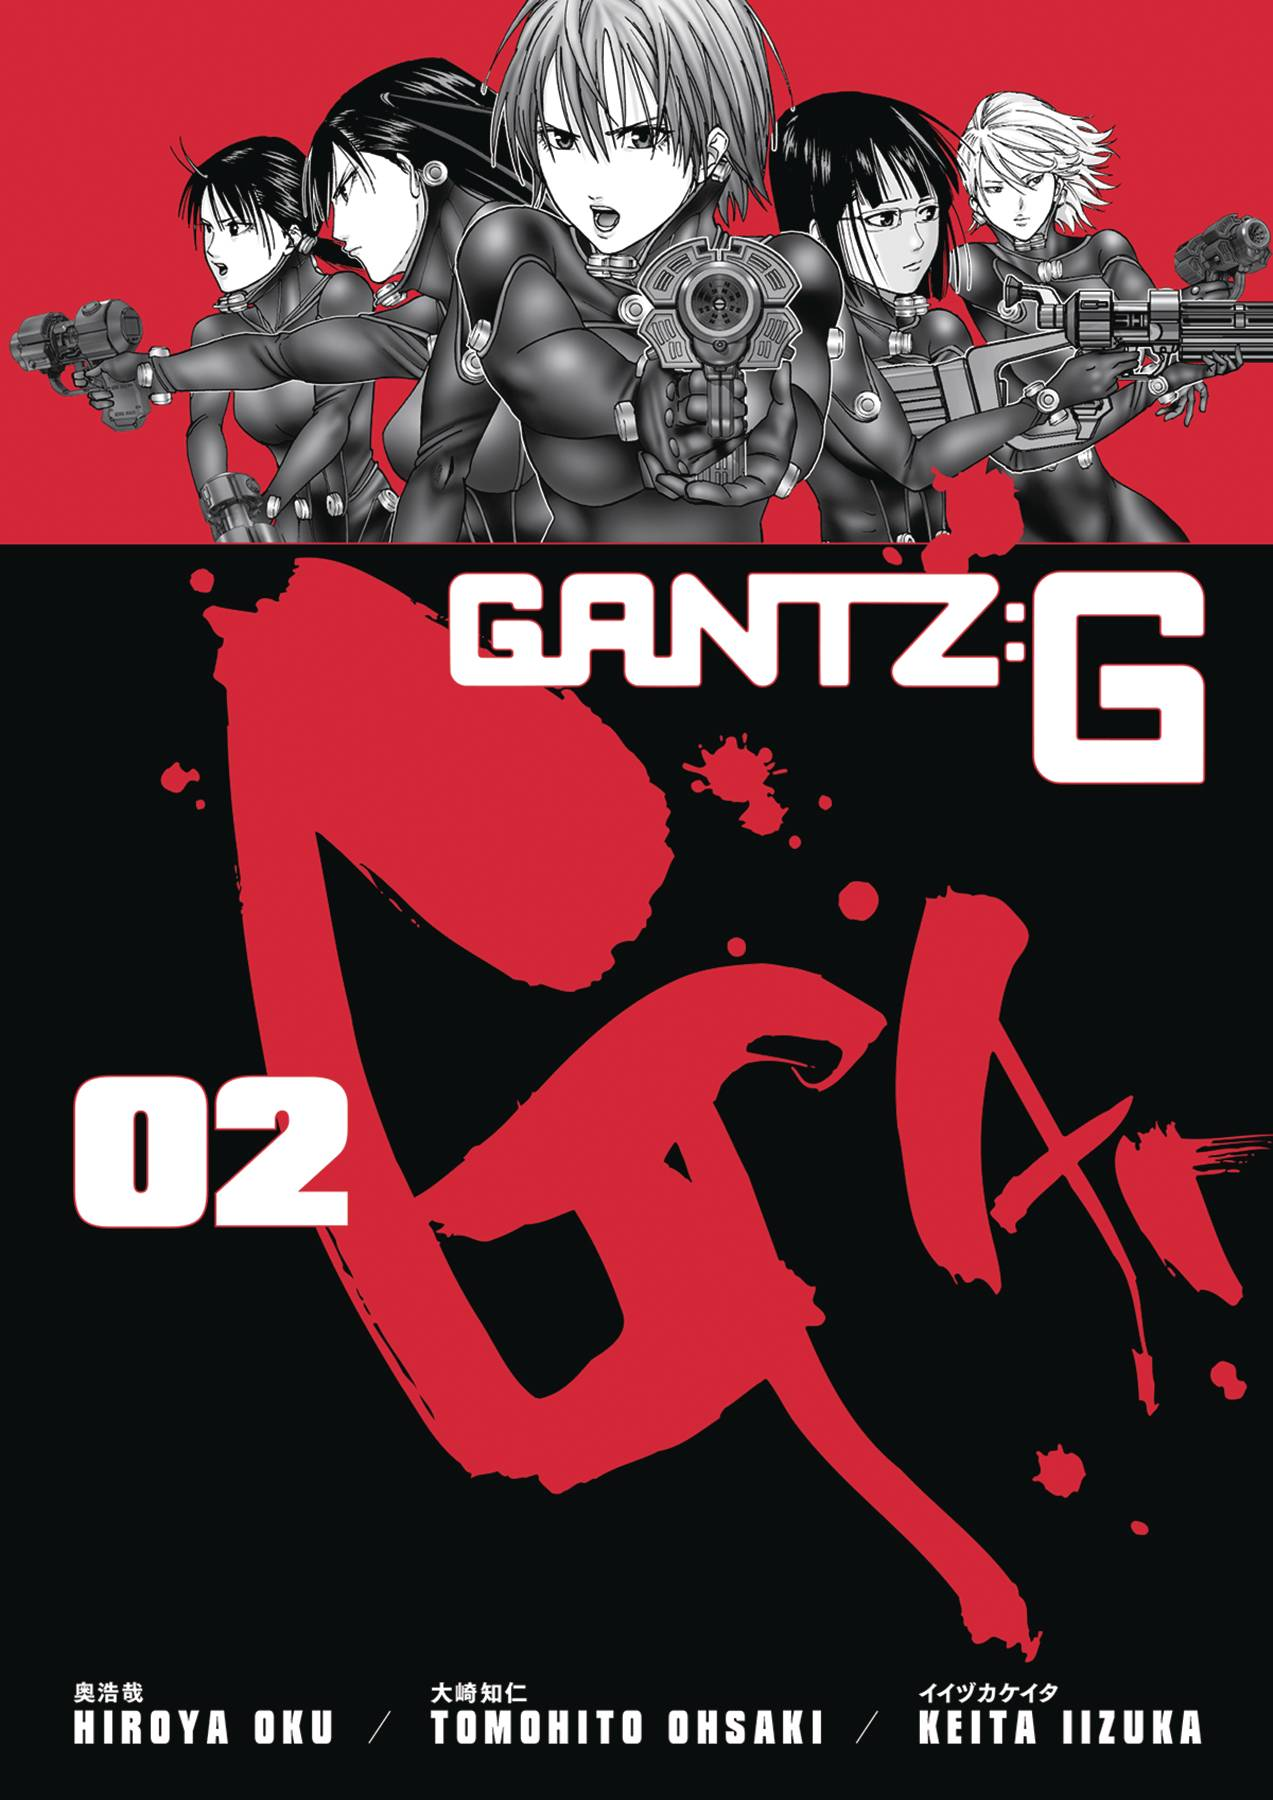 GANTZ G TP VOL 02 (JUN180384)